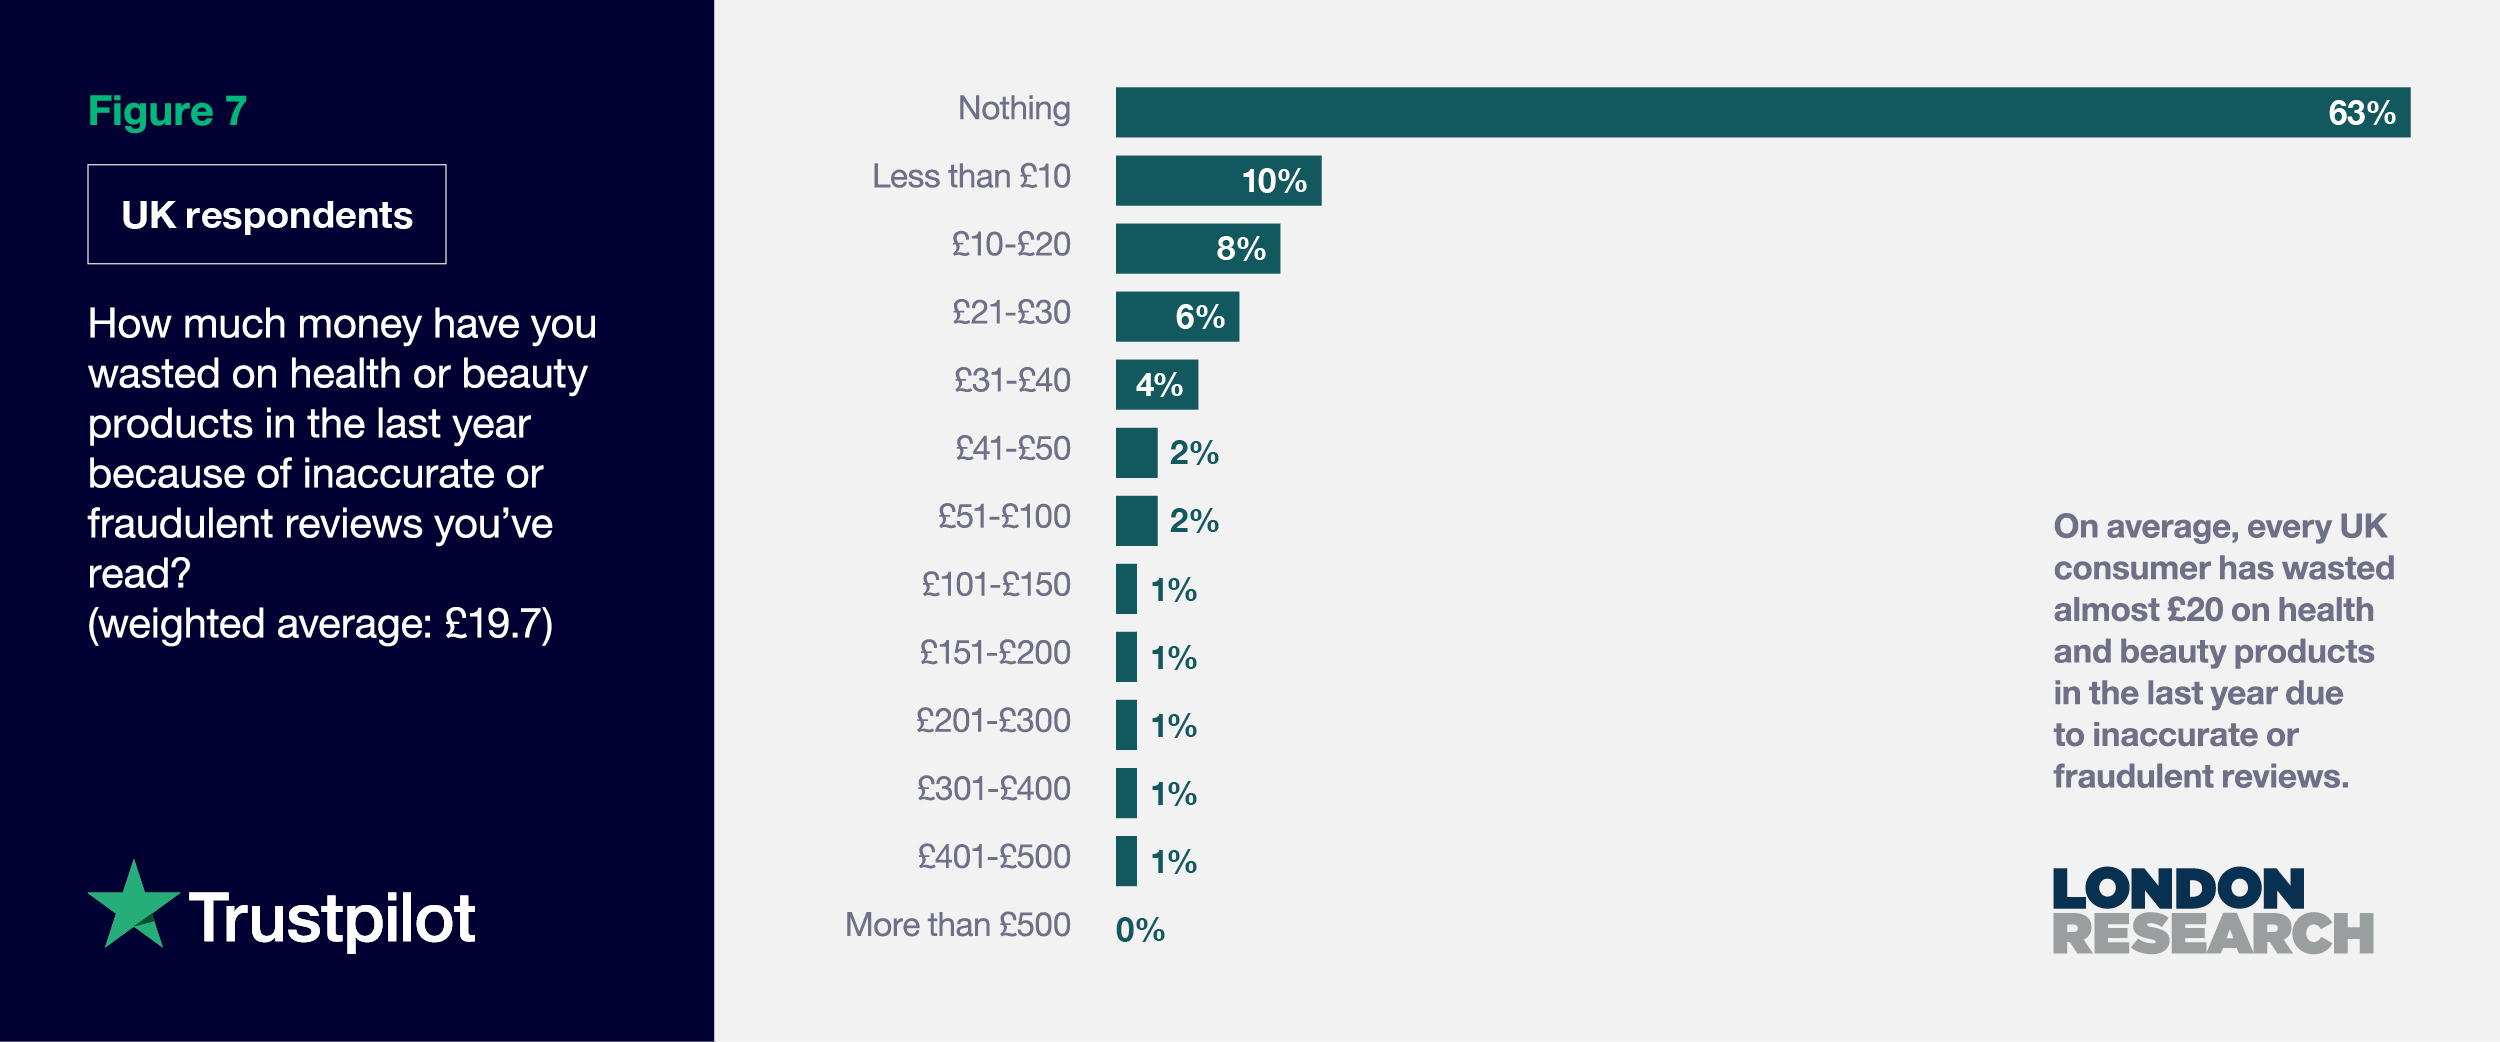 Figure 7: (UK Respondents) How much money have you wasted on health or beauty products due to fake reviews?